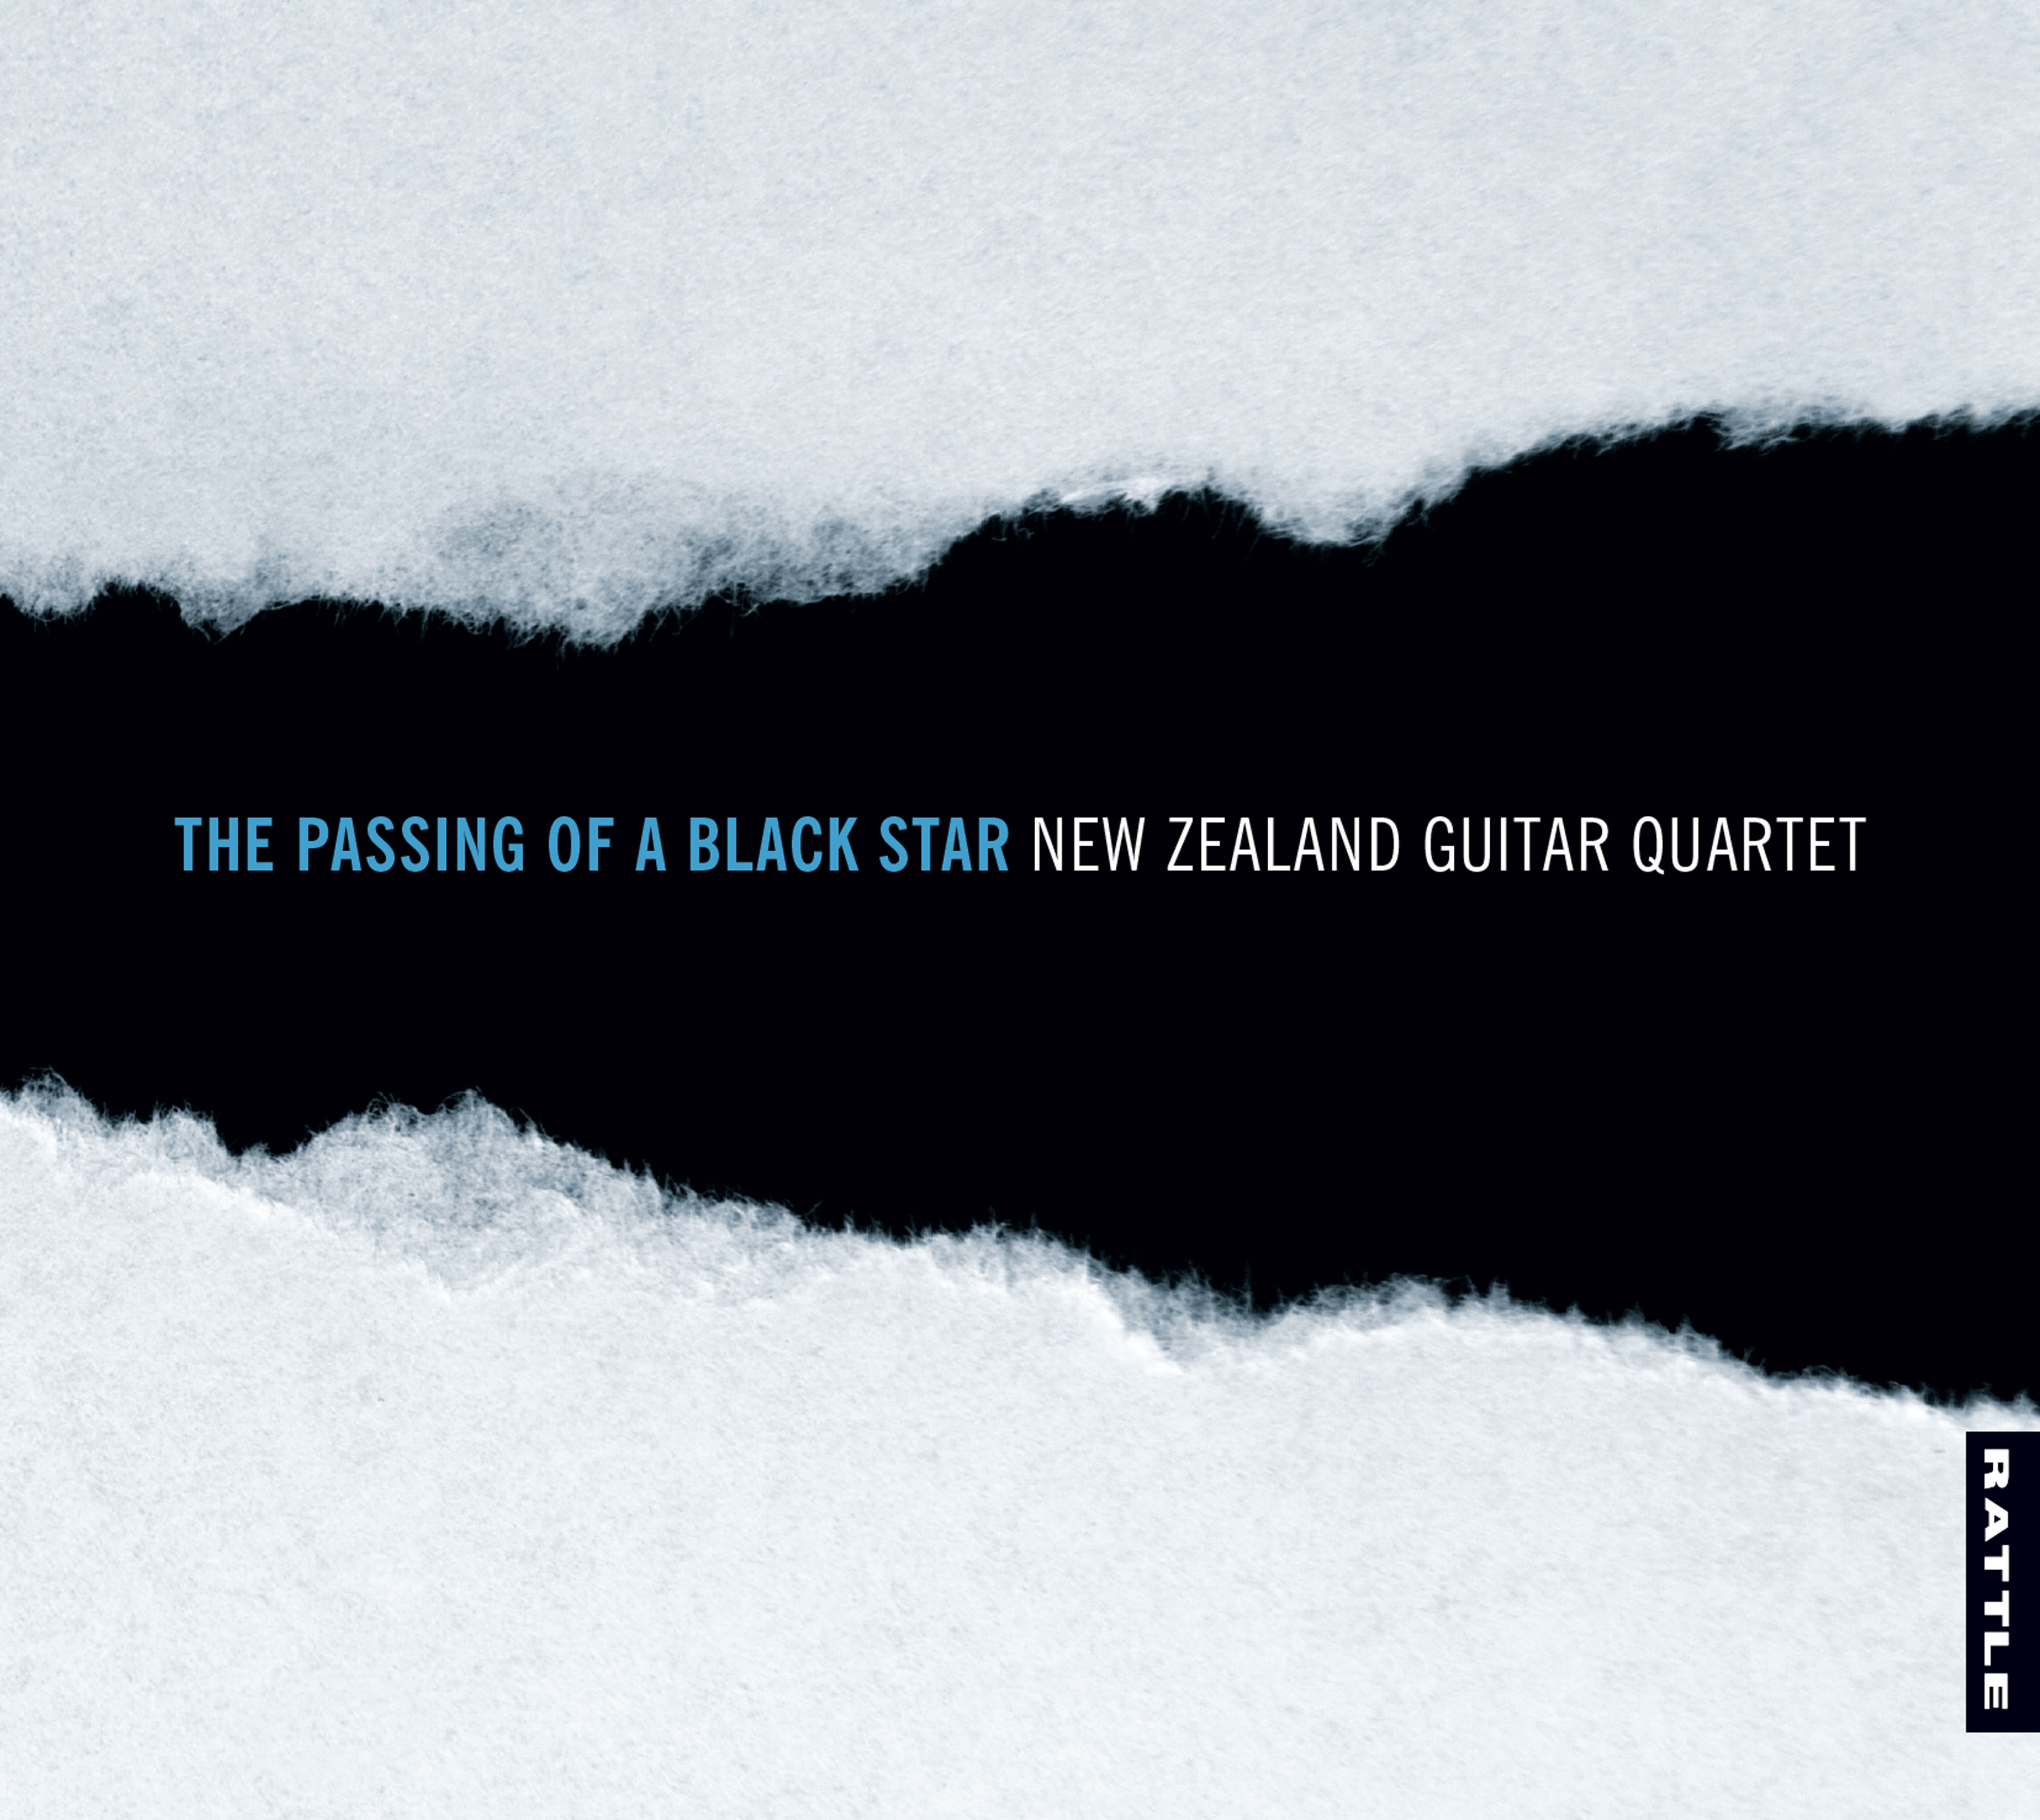 New Zealand Guitar Quartet | The Passing of a Black Star - downloadable MP3 ALBUM